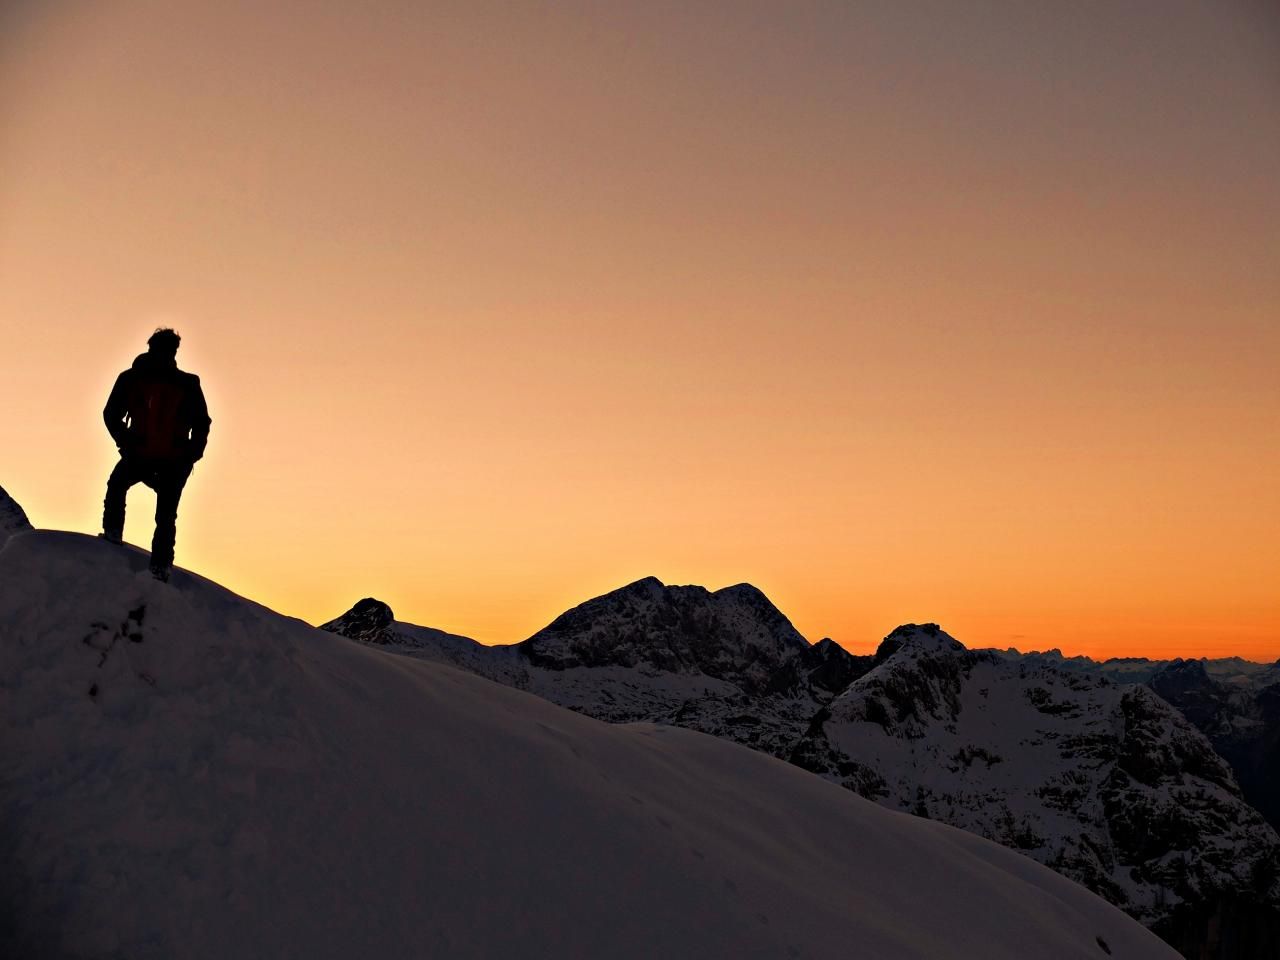 A picture from sella nevea by Piussi Andrea